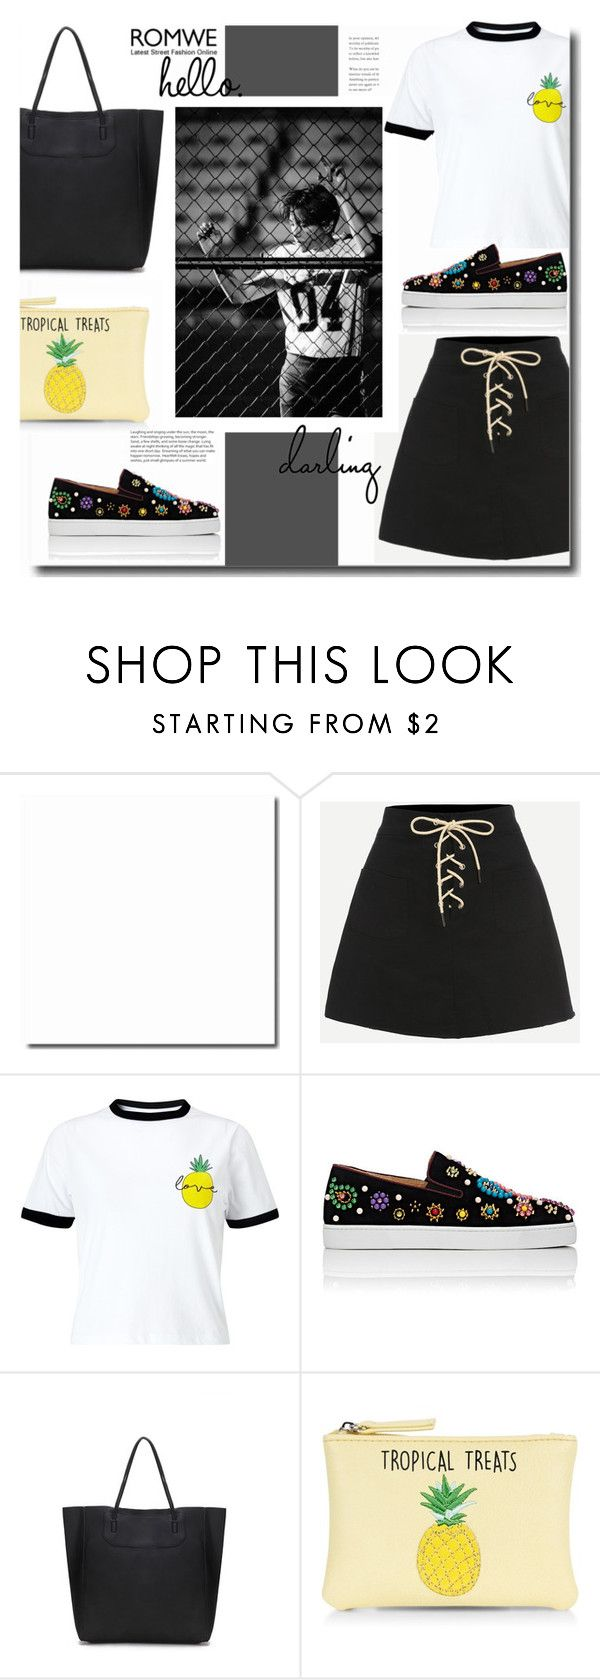 """""""Hello Darling"""" by kts-desilva ❤ liked on Polyvore featuring Miss Selfridge, Christian Louboutin and New Look"""